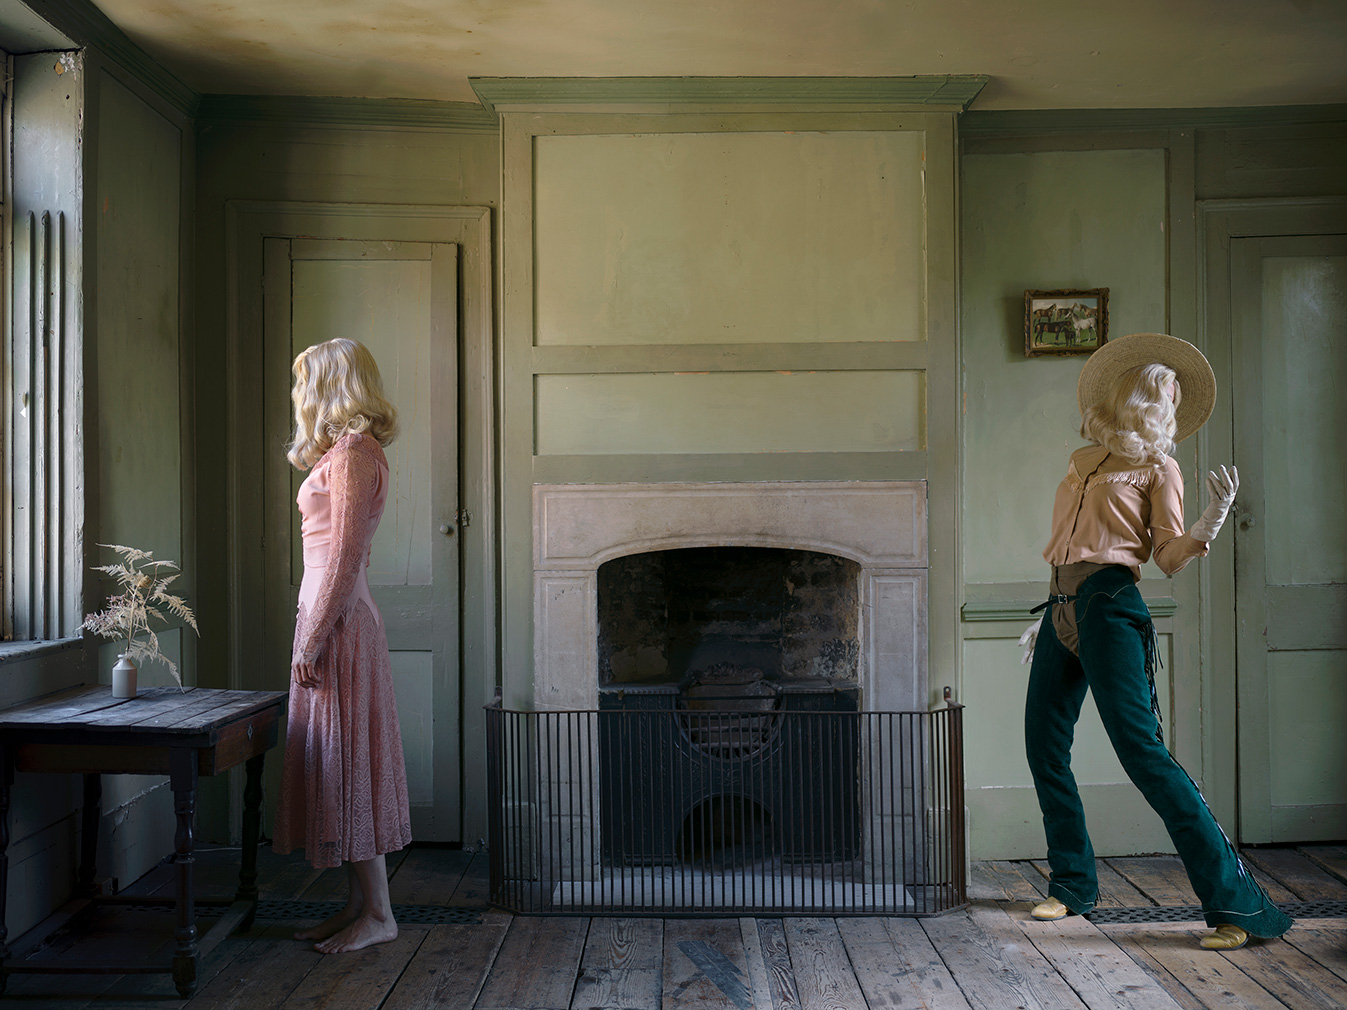 'She Could Have Been a Cowboy'. Photography: Anja Niemi (c) 2019